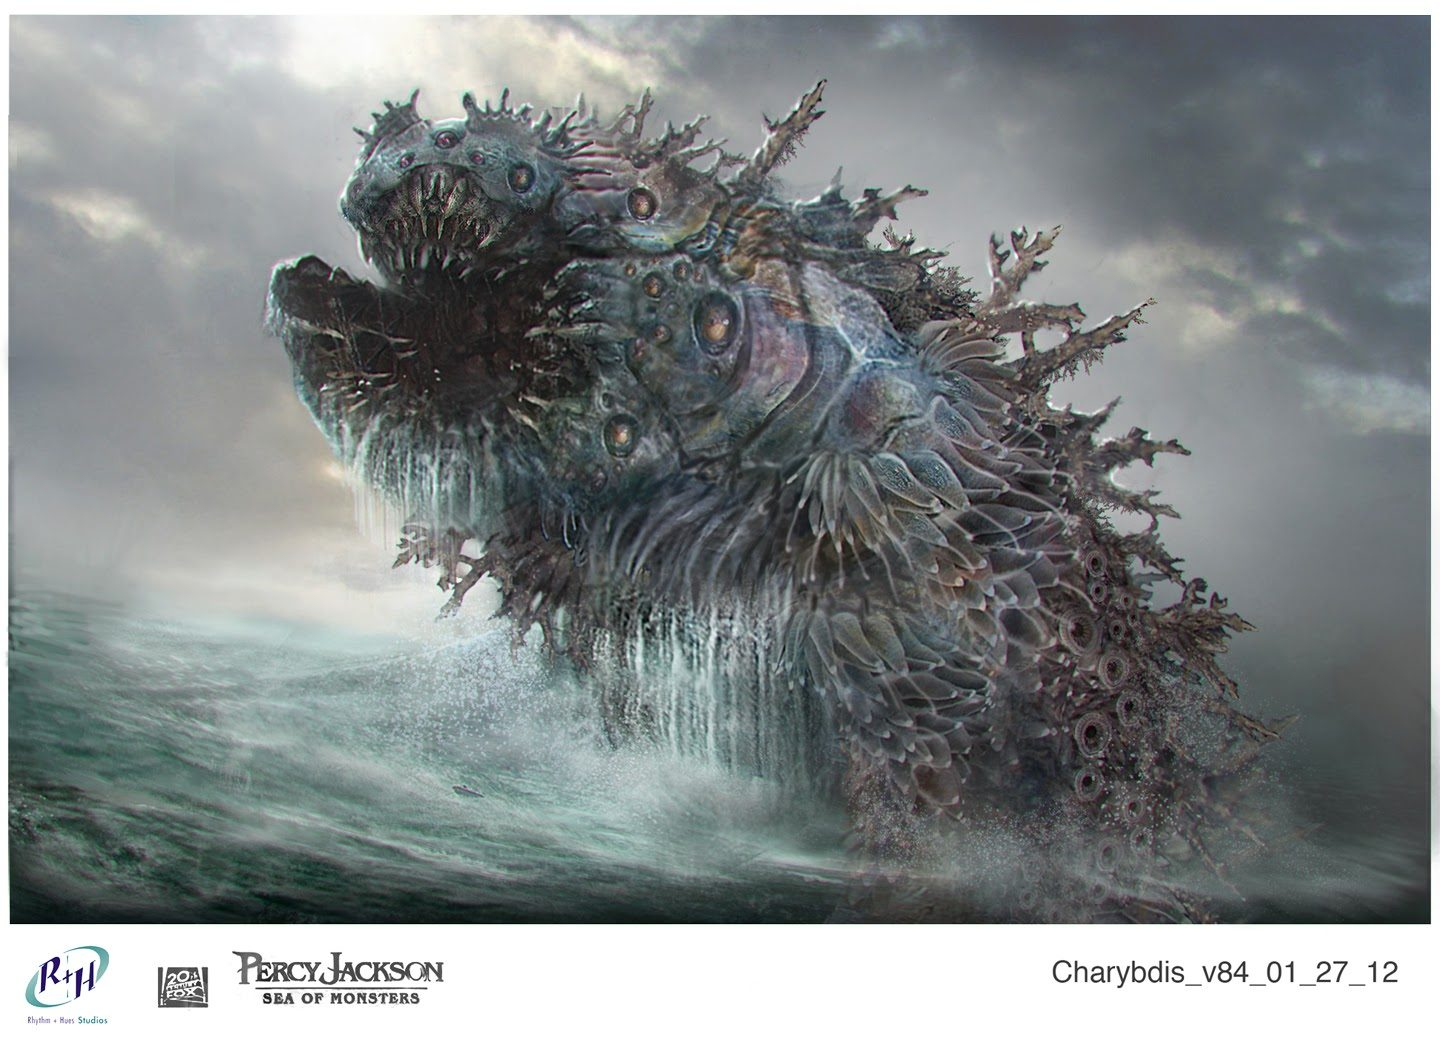 Percy Jackson Sea Monster Concept Art